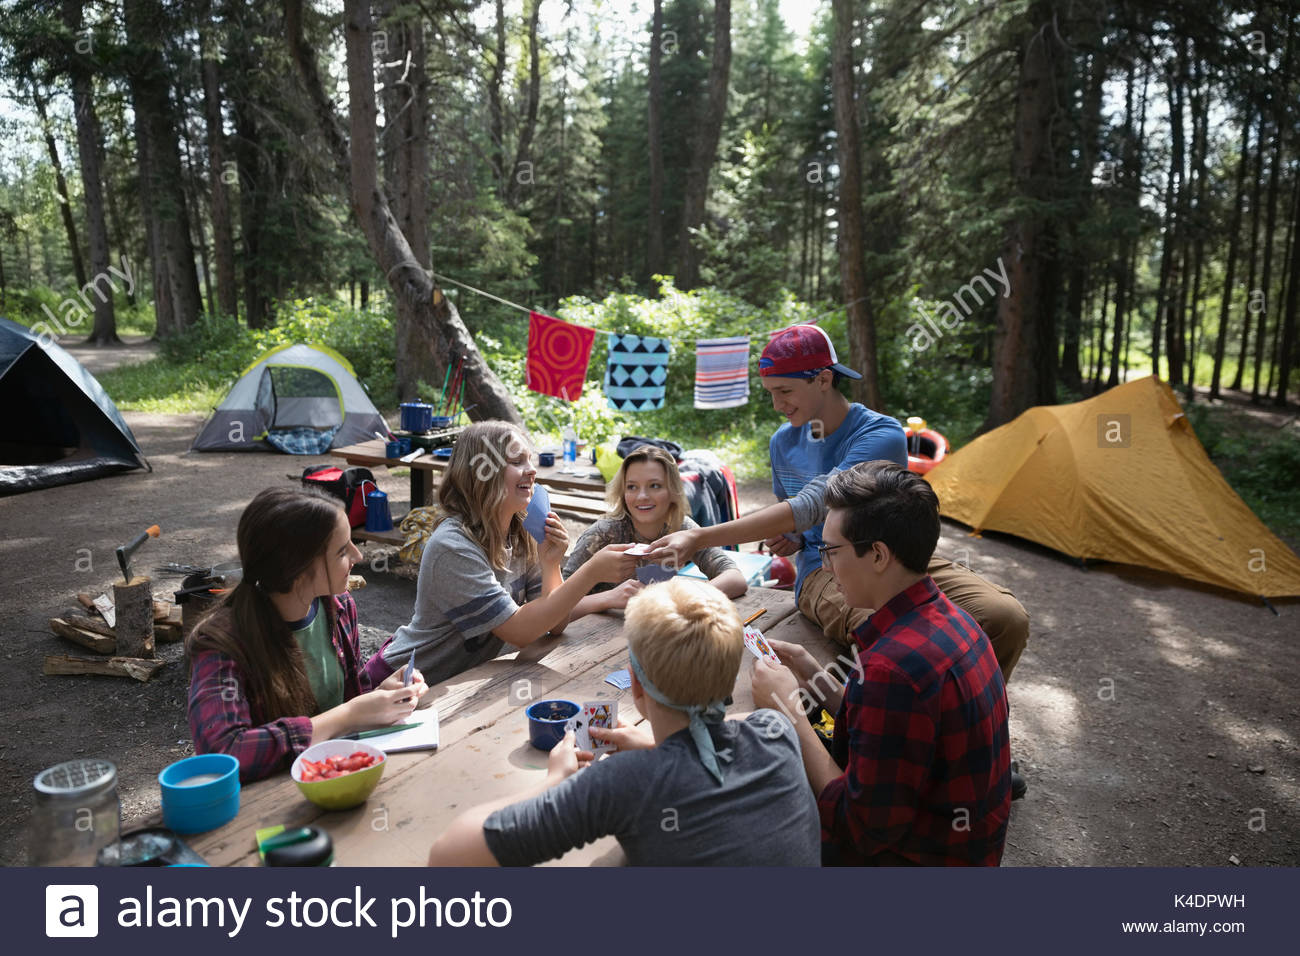 Teenage outdoor students at campsite picnic table - Stock Image